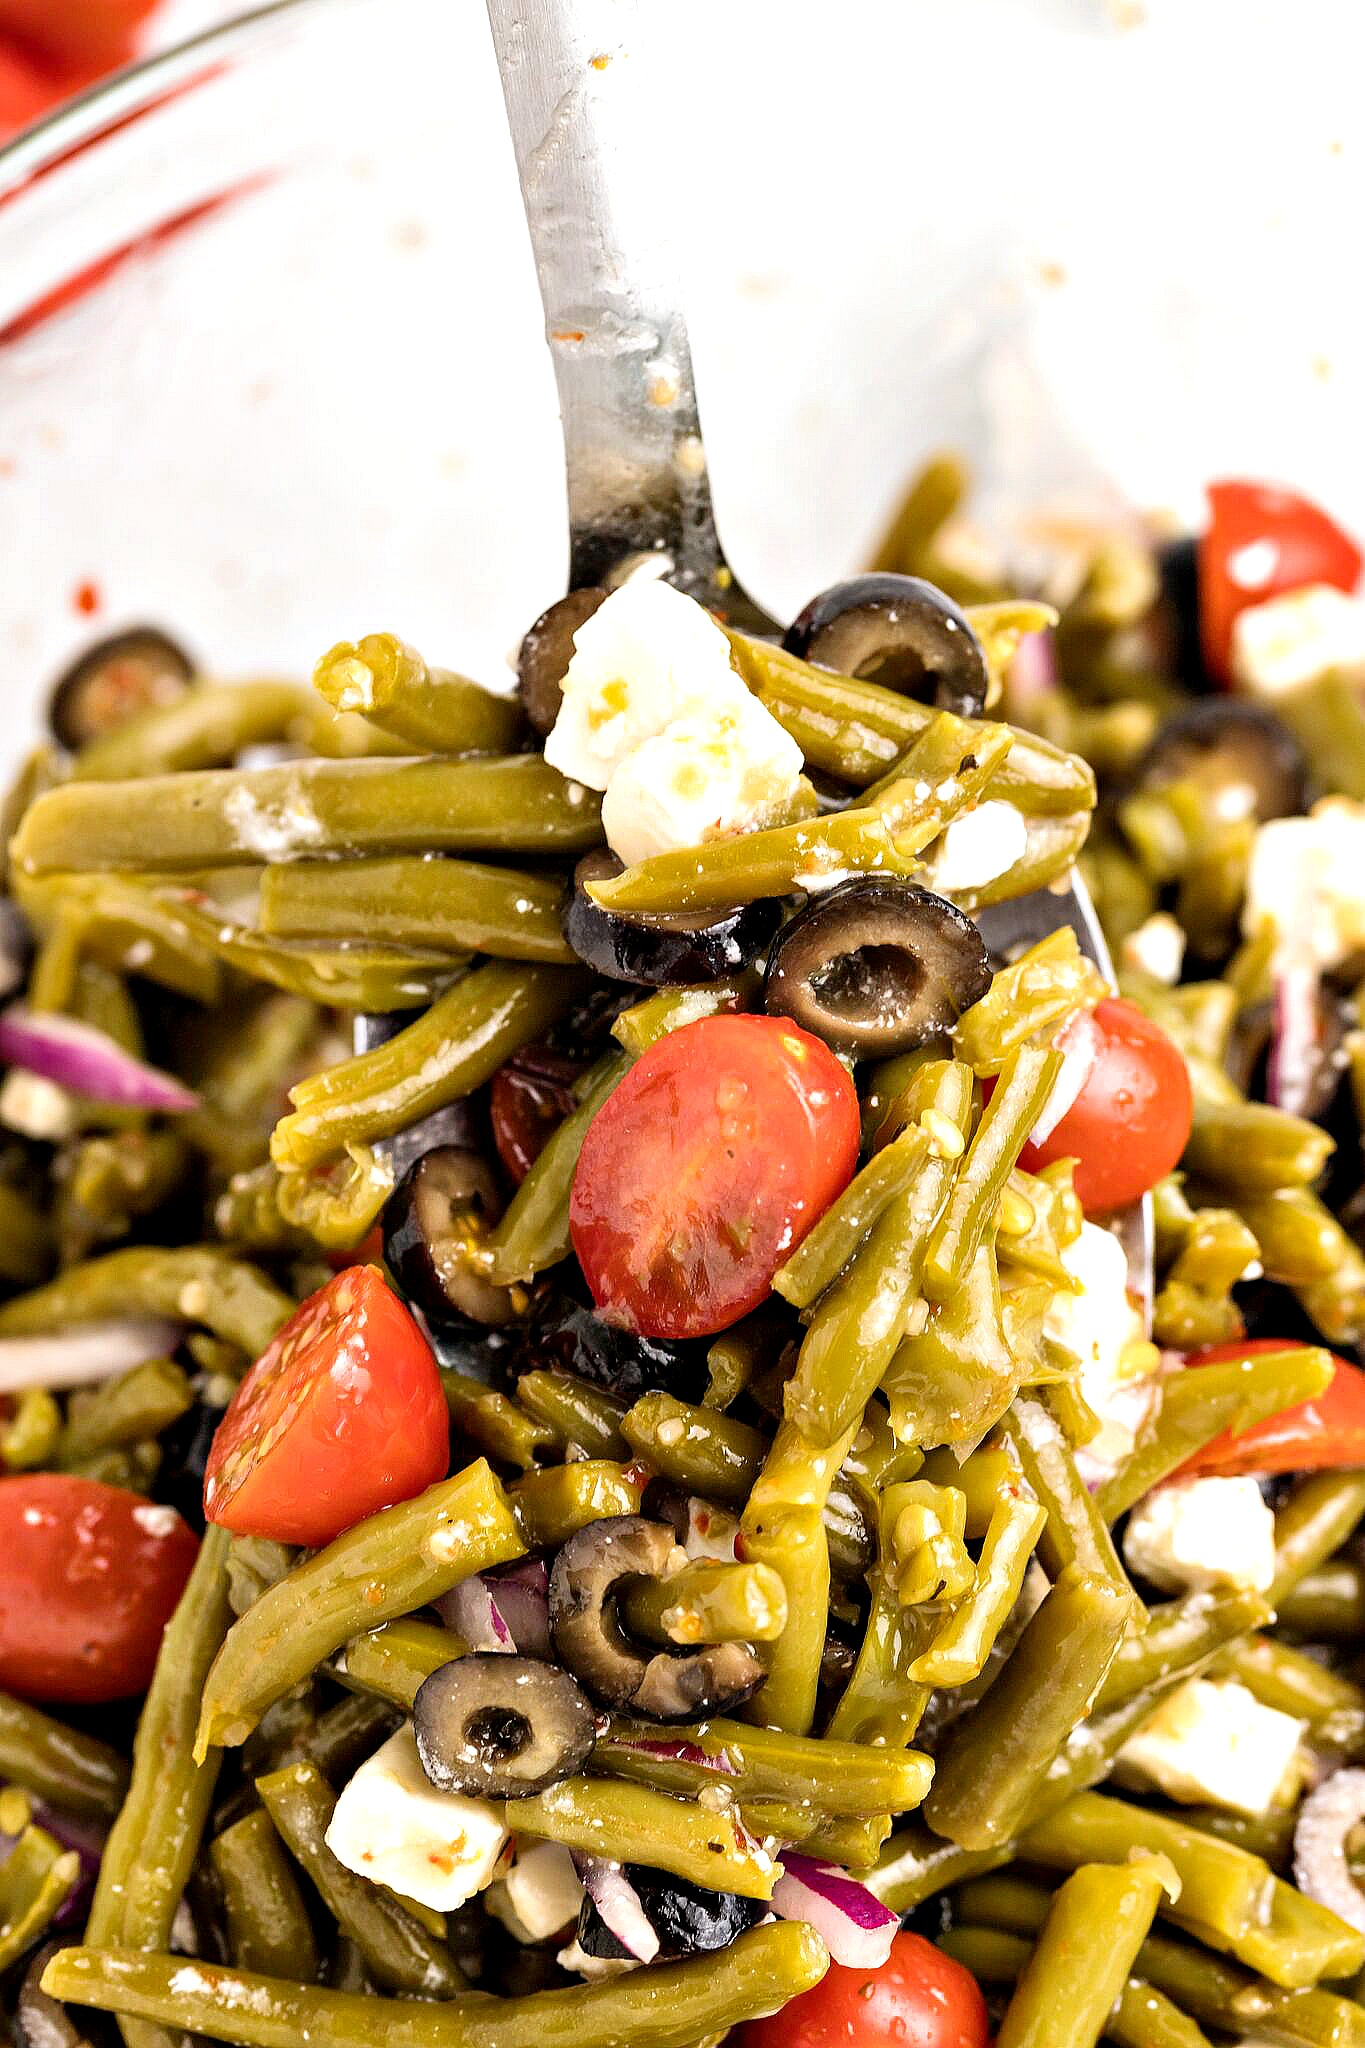 Canned Green Bean Recipe